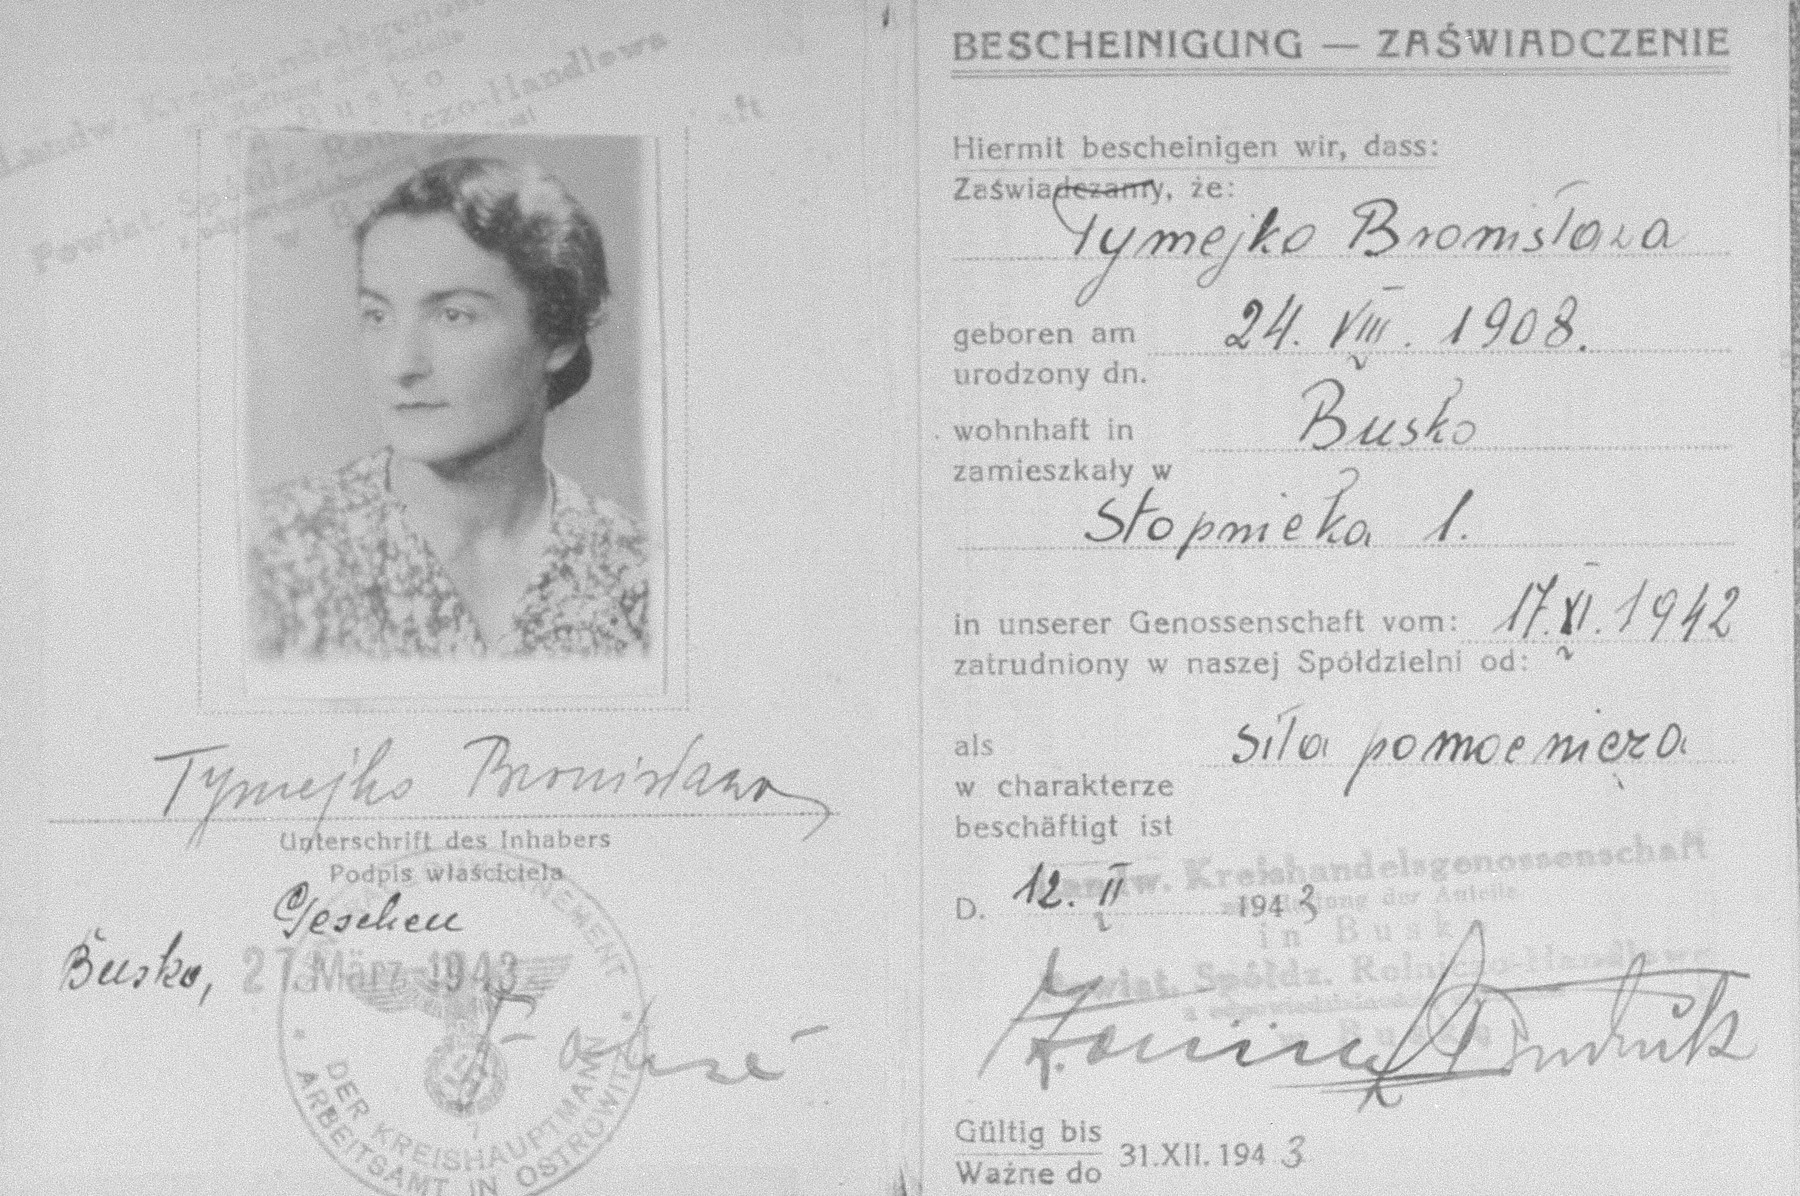 Document issued by the Regional Agricultural Mercantile Cooperative in Busko-Zdroj certifying that Bronislawa Tymejko (the Polish alias of the Jewish woman Laura Schwarzwald) is employed by the cooperative.